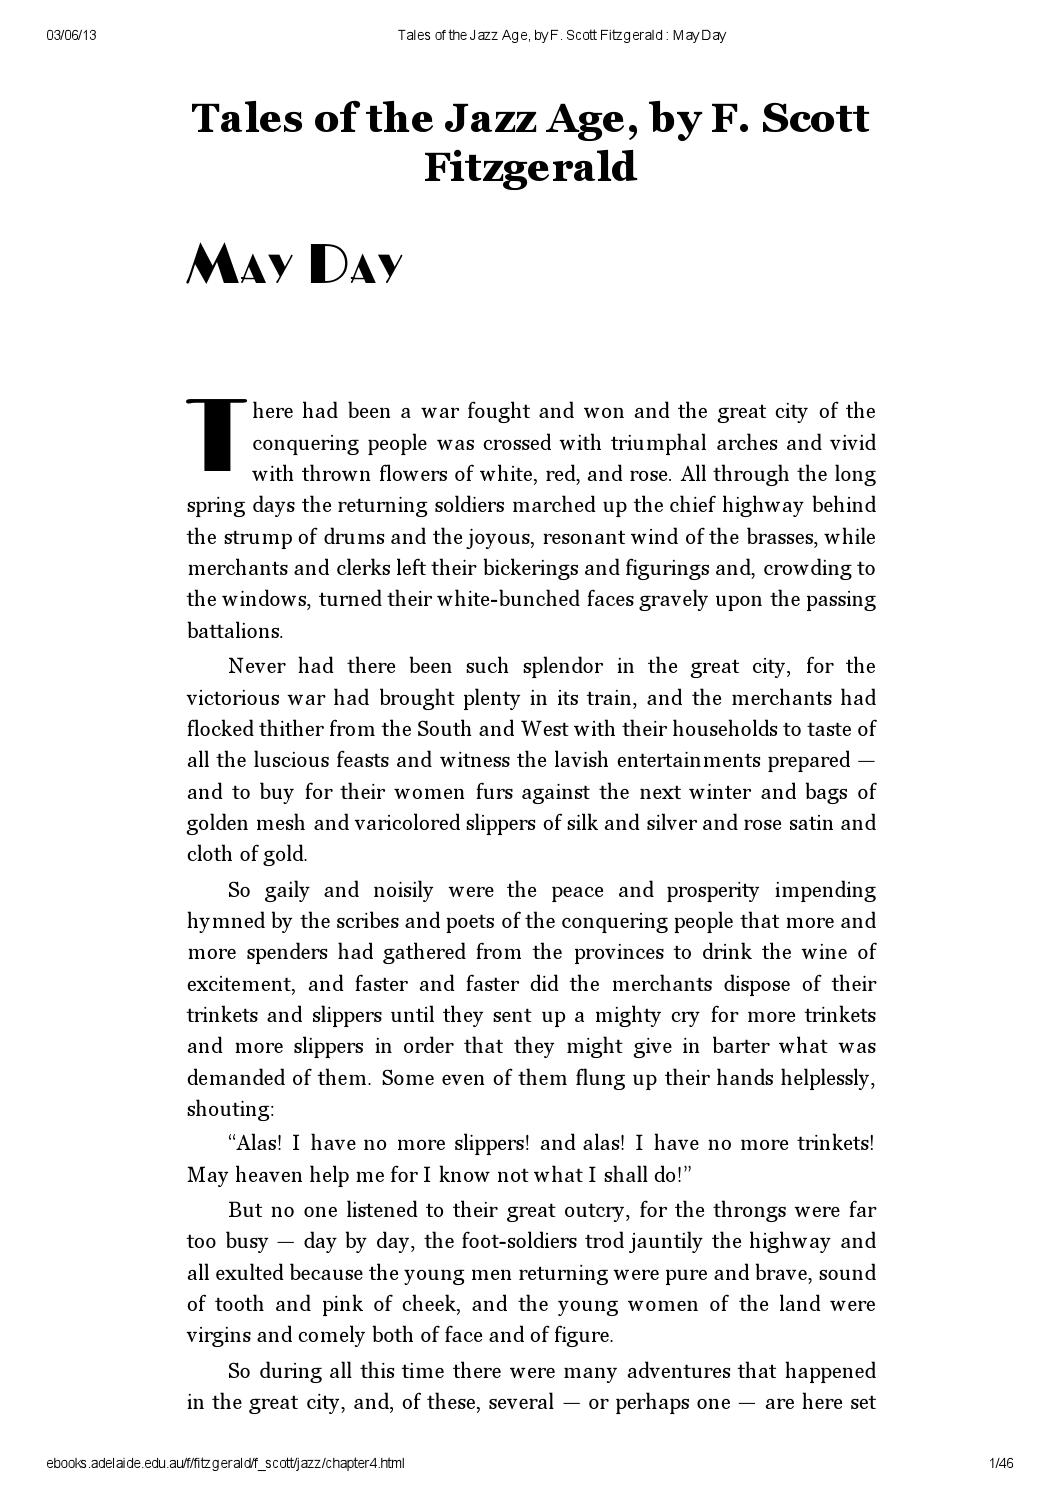 May Day F Scott Fitzgerald By Publiletras Issuu border=